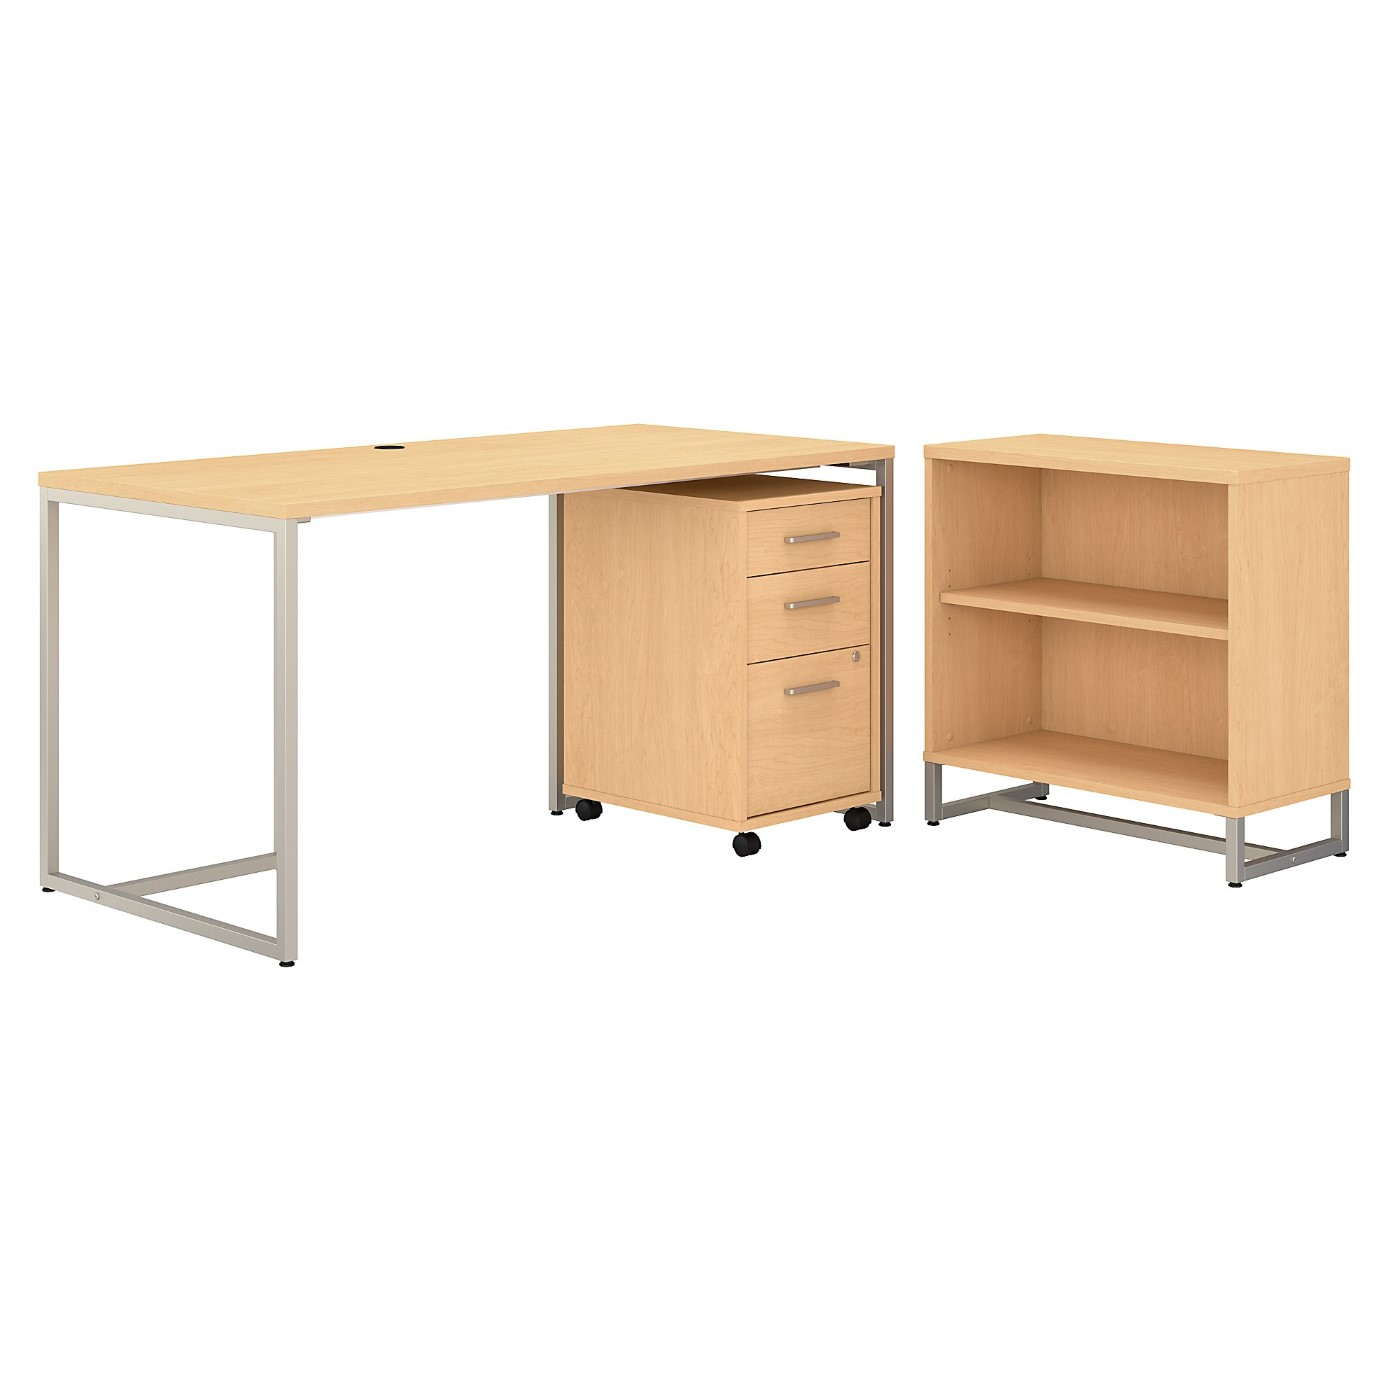 OFFICE BY KATHY IRELAND® METHOD 60W TABLE DESK WITH BOOKCASE AND MOBILE FILE CABINET. FREE SHIPPING SALE DEDUCT 10% MORE ENTER '10percent' IN COUPON CODE BOX WHILE CHECKING OUT.